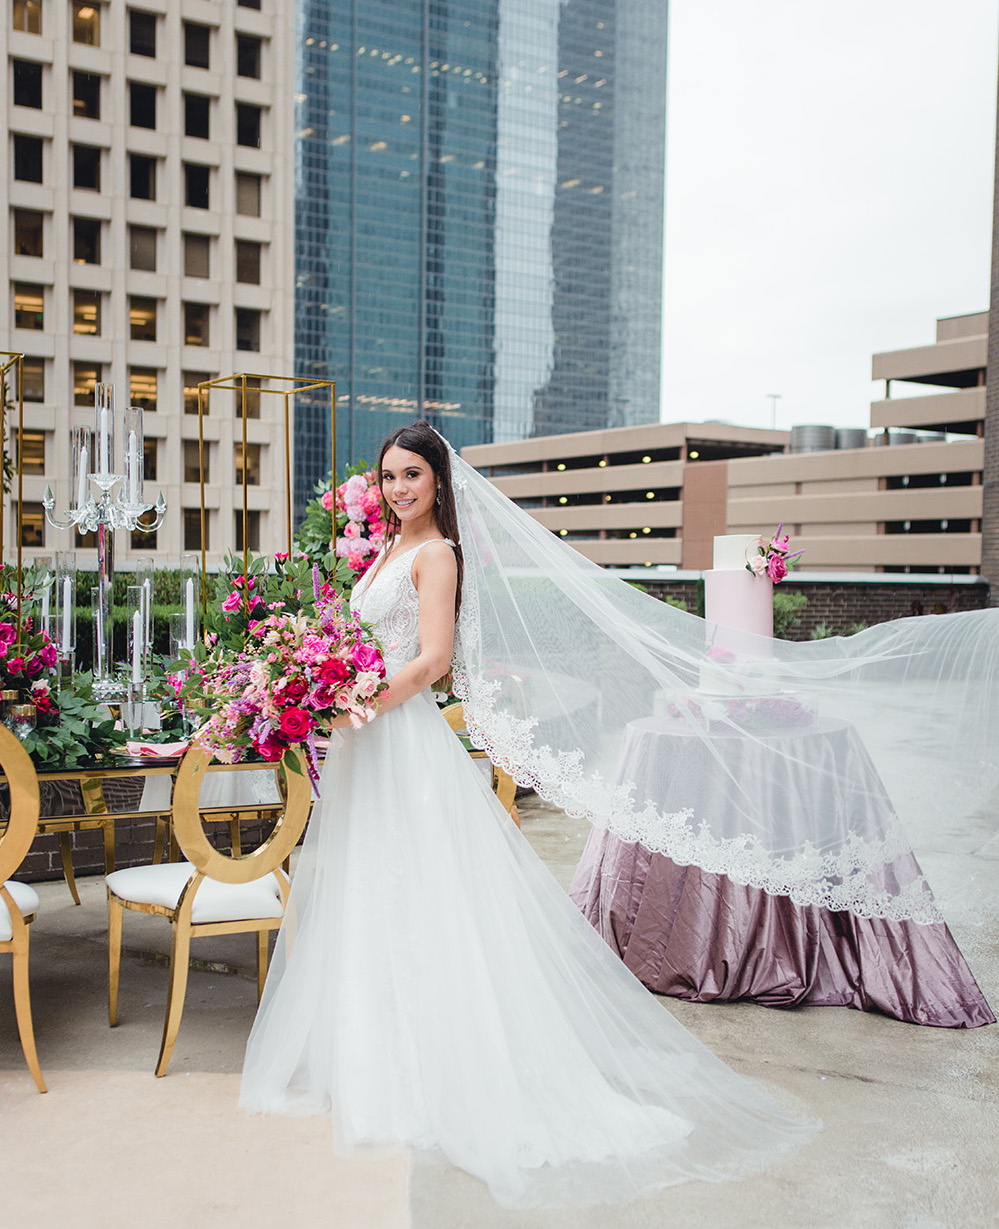 Our bride holds her bridal bouquet in front of a reception table while her veil gracefully catches the wind.